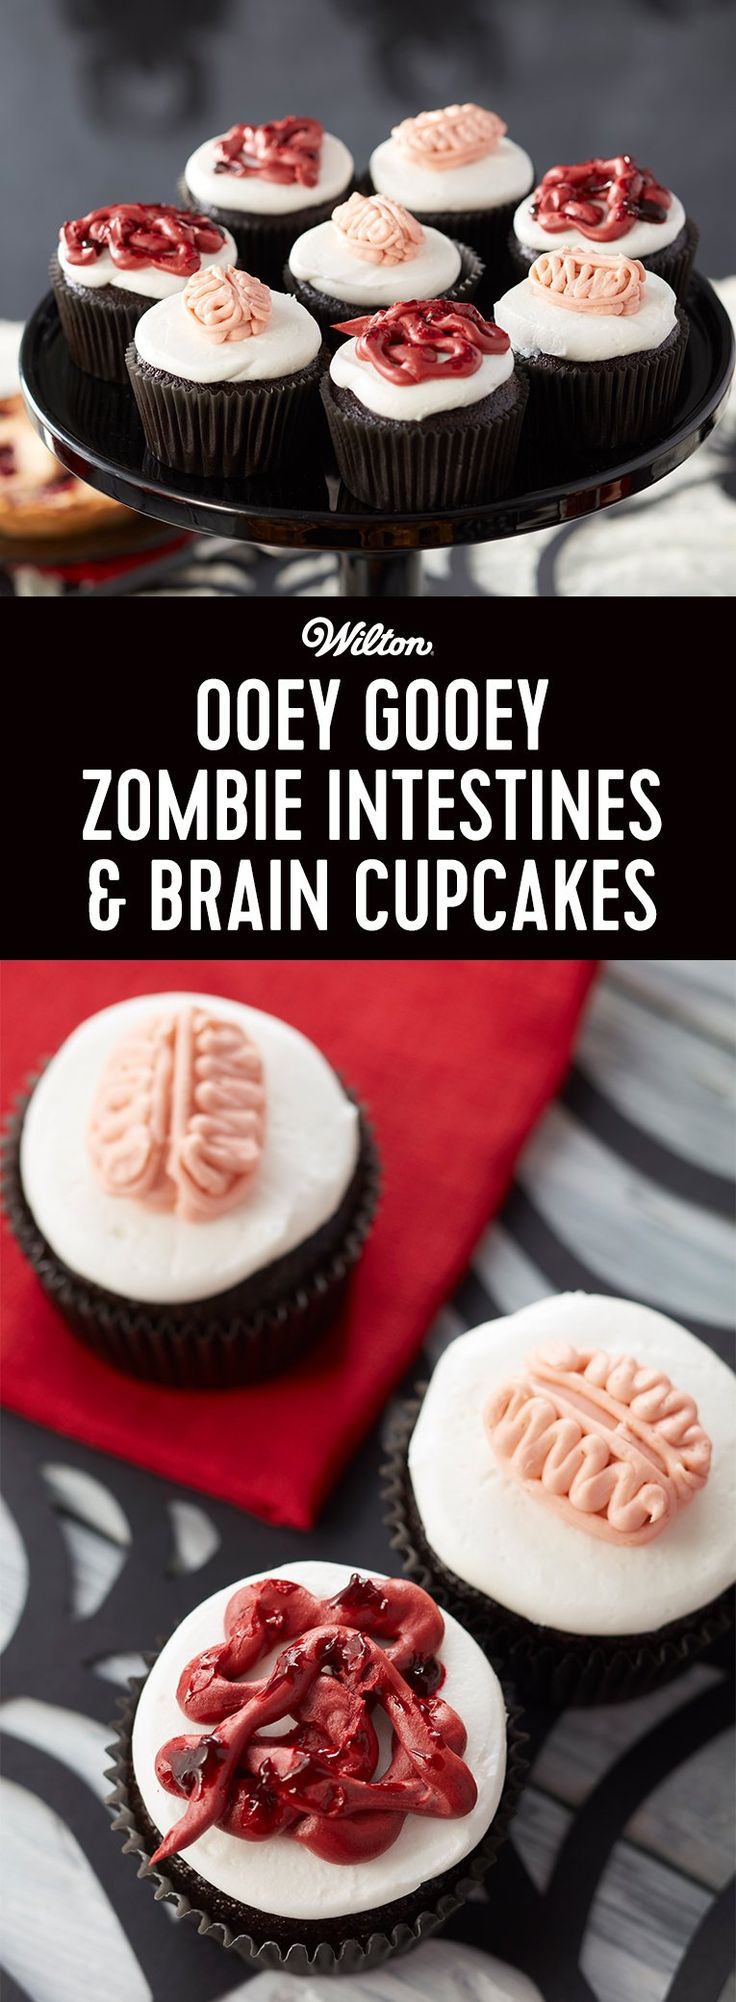 How to Make Zombie Cupcakes - A little squeamish yet yummy, these cupcakes are topped with oozy intestines and squishy brains for a Halloween dessert that's more than scream-worthy. Best of all, they are oh so easy to make!